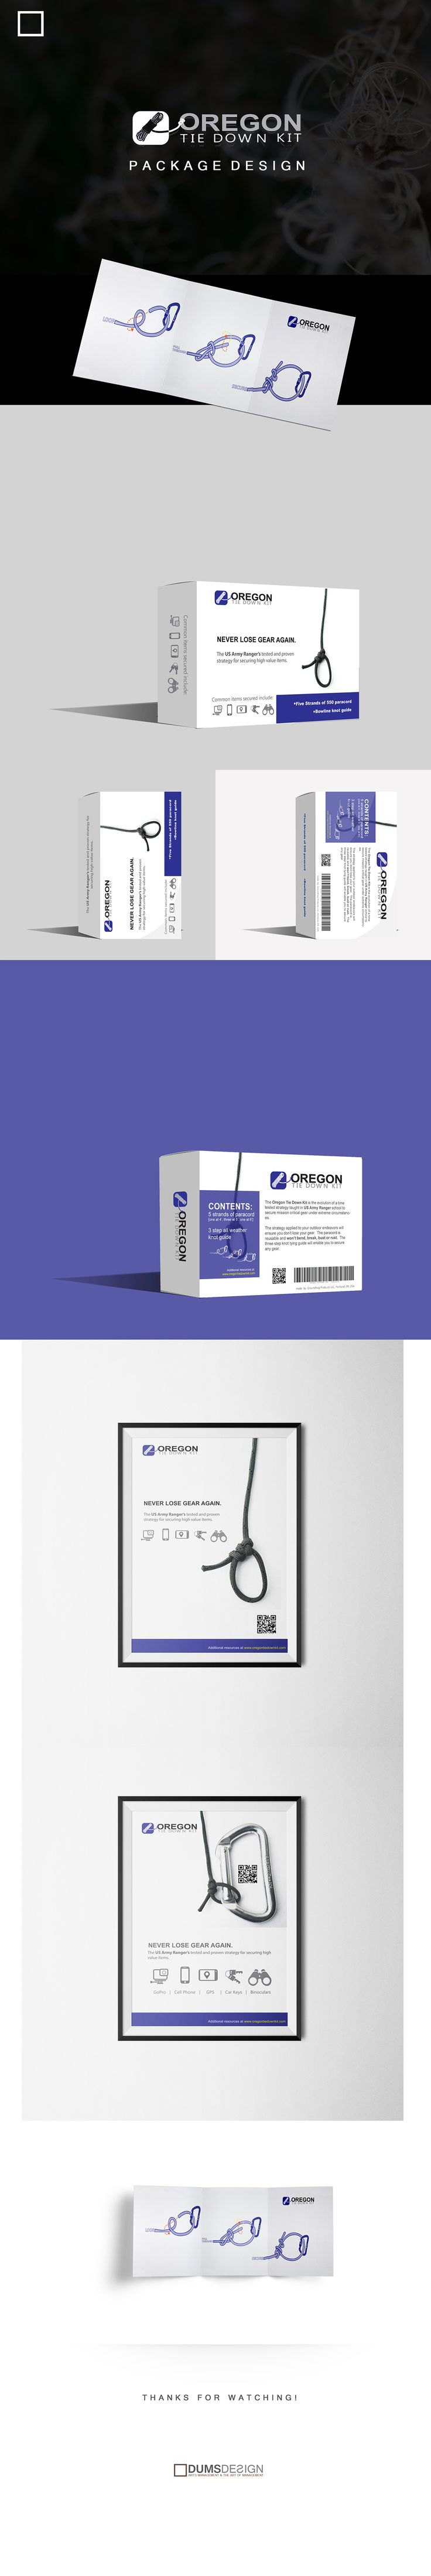 Oregon Tie Down Kit - Packaging Design on Behance